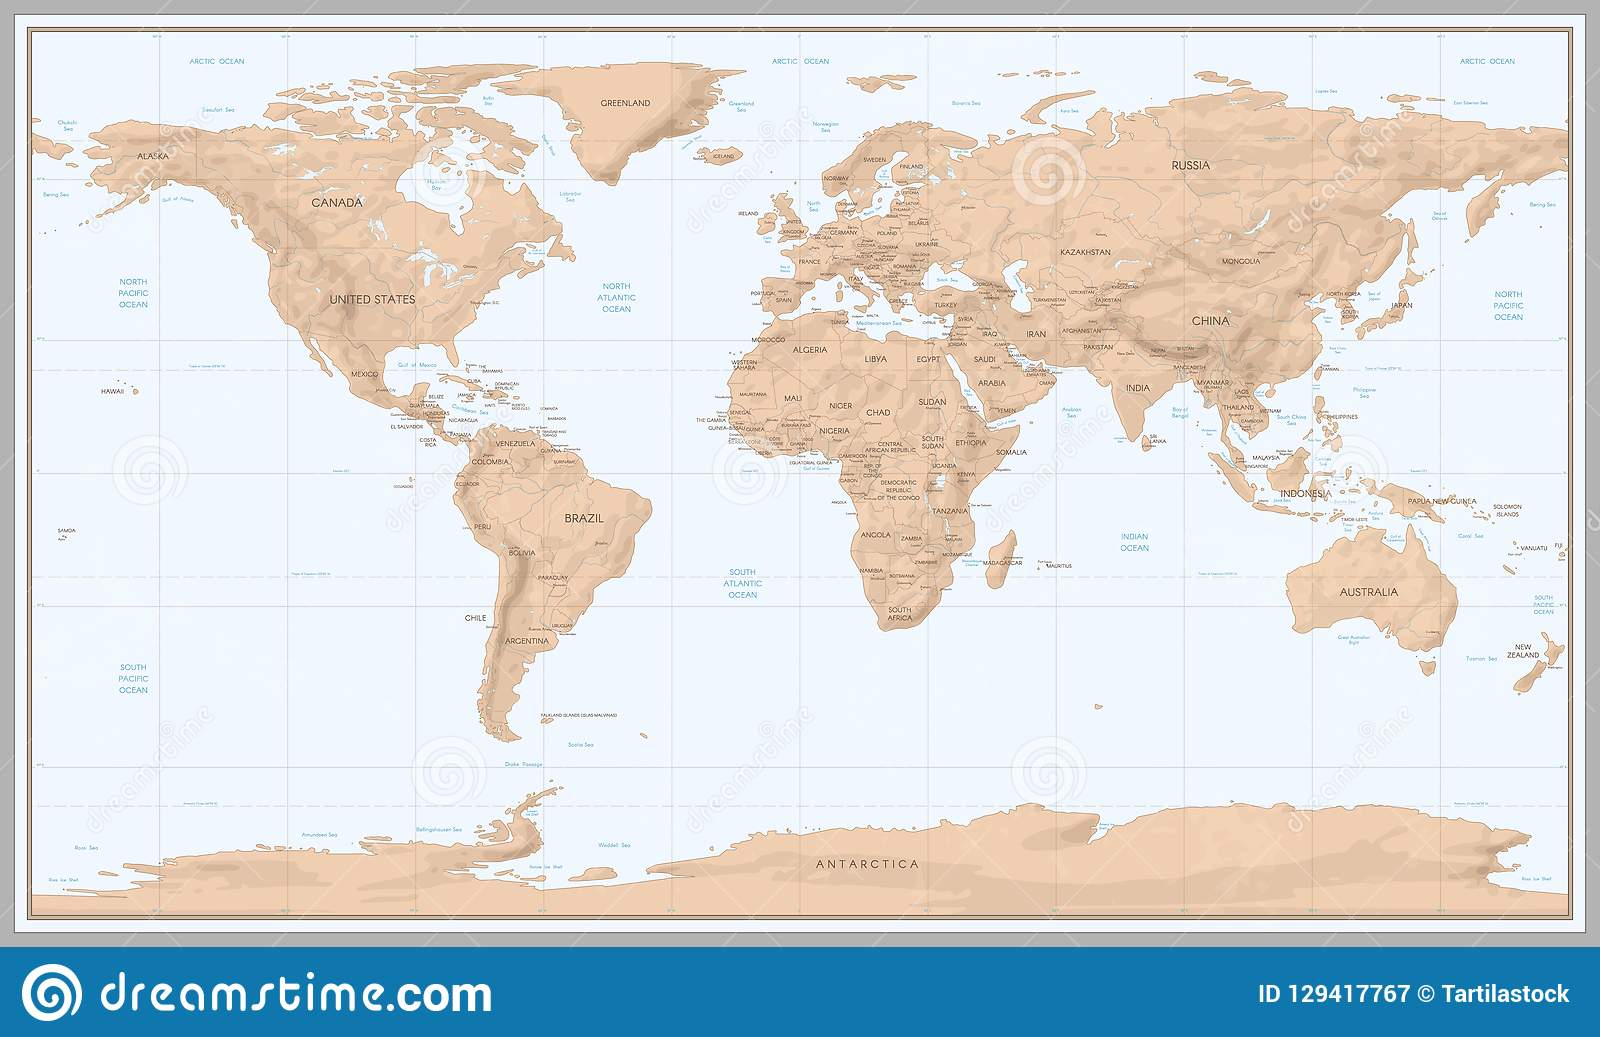 Navigation World Map.Vintage World Map Retro Countries Boundaries On Topographic Or